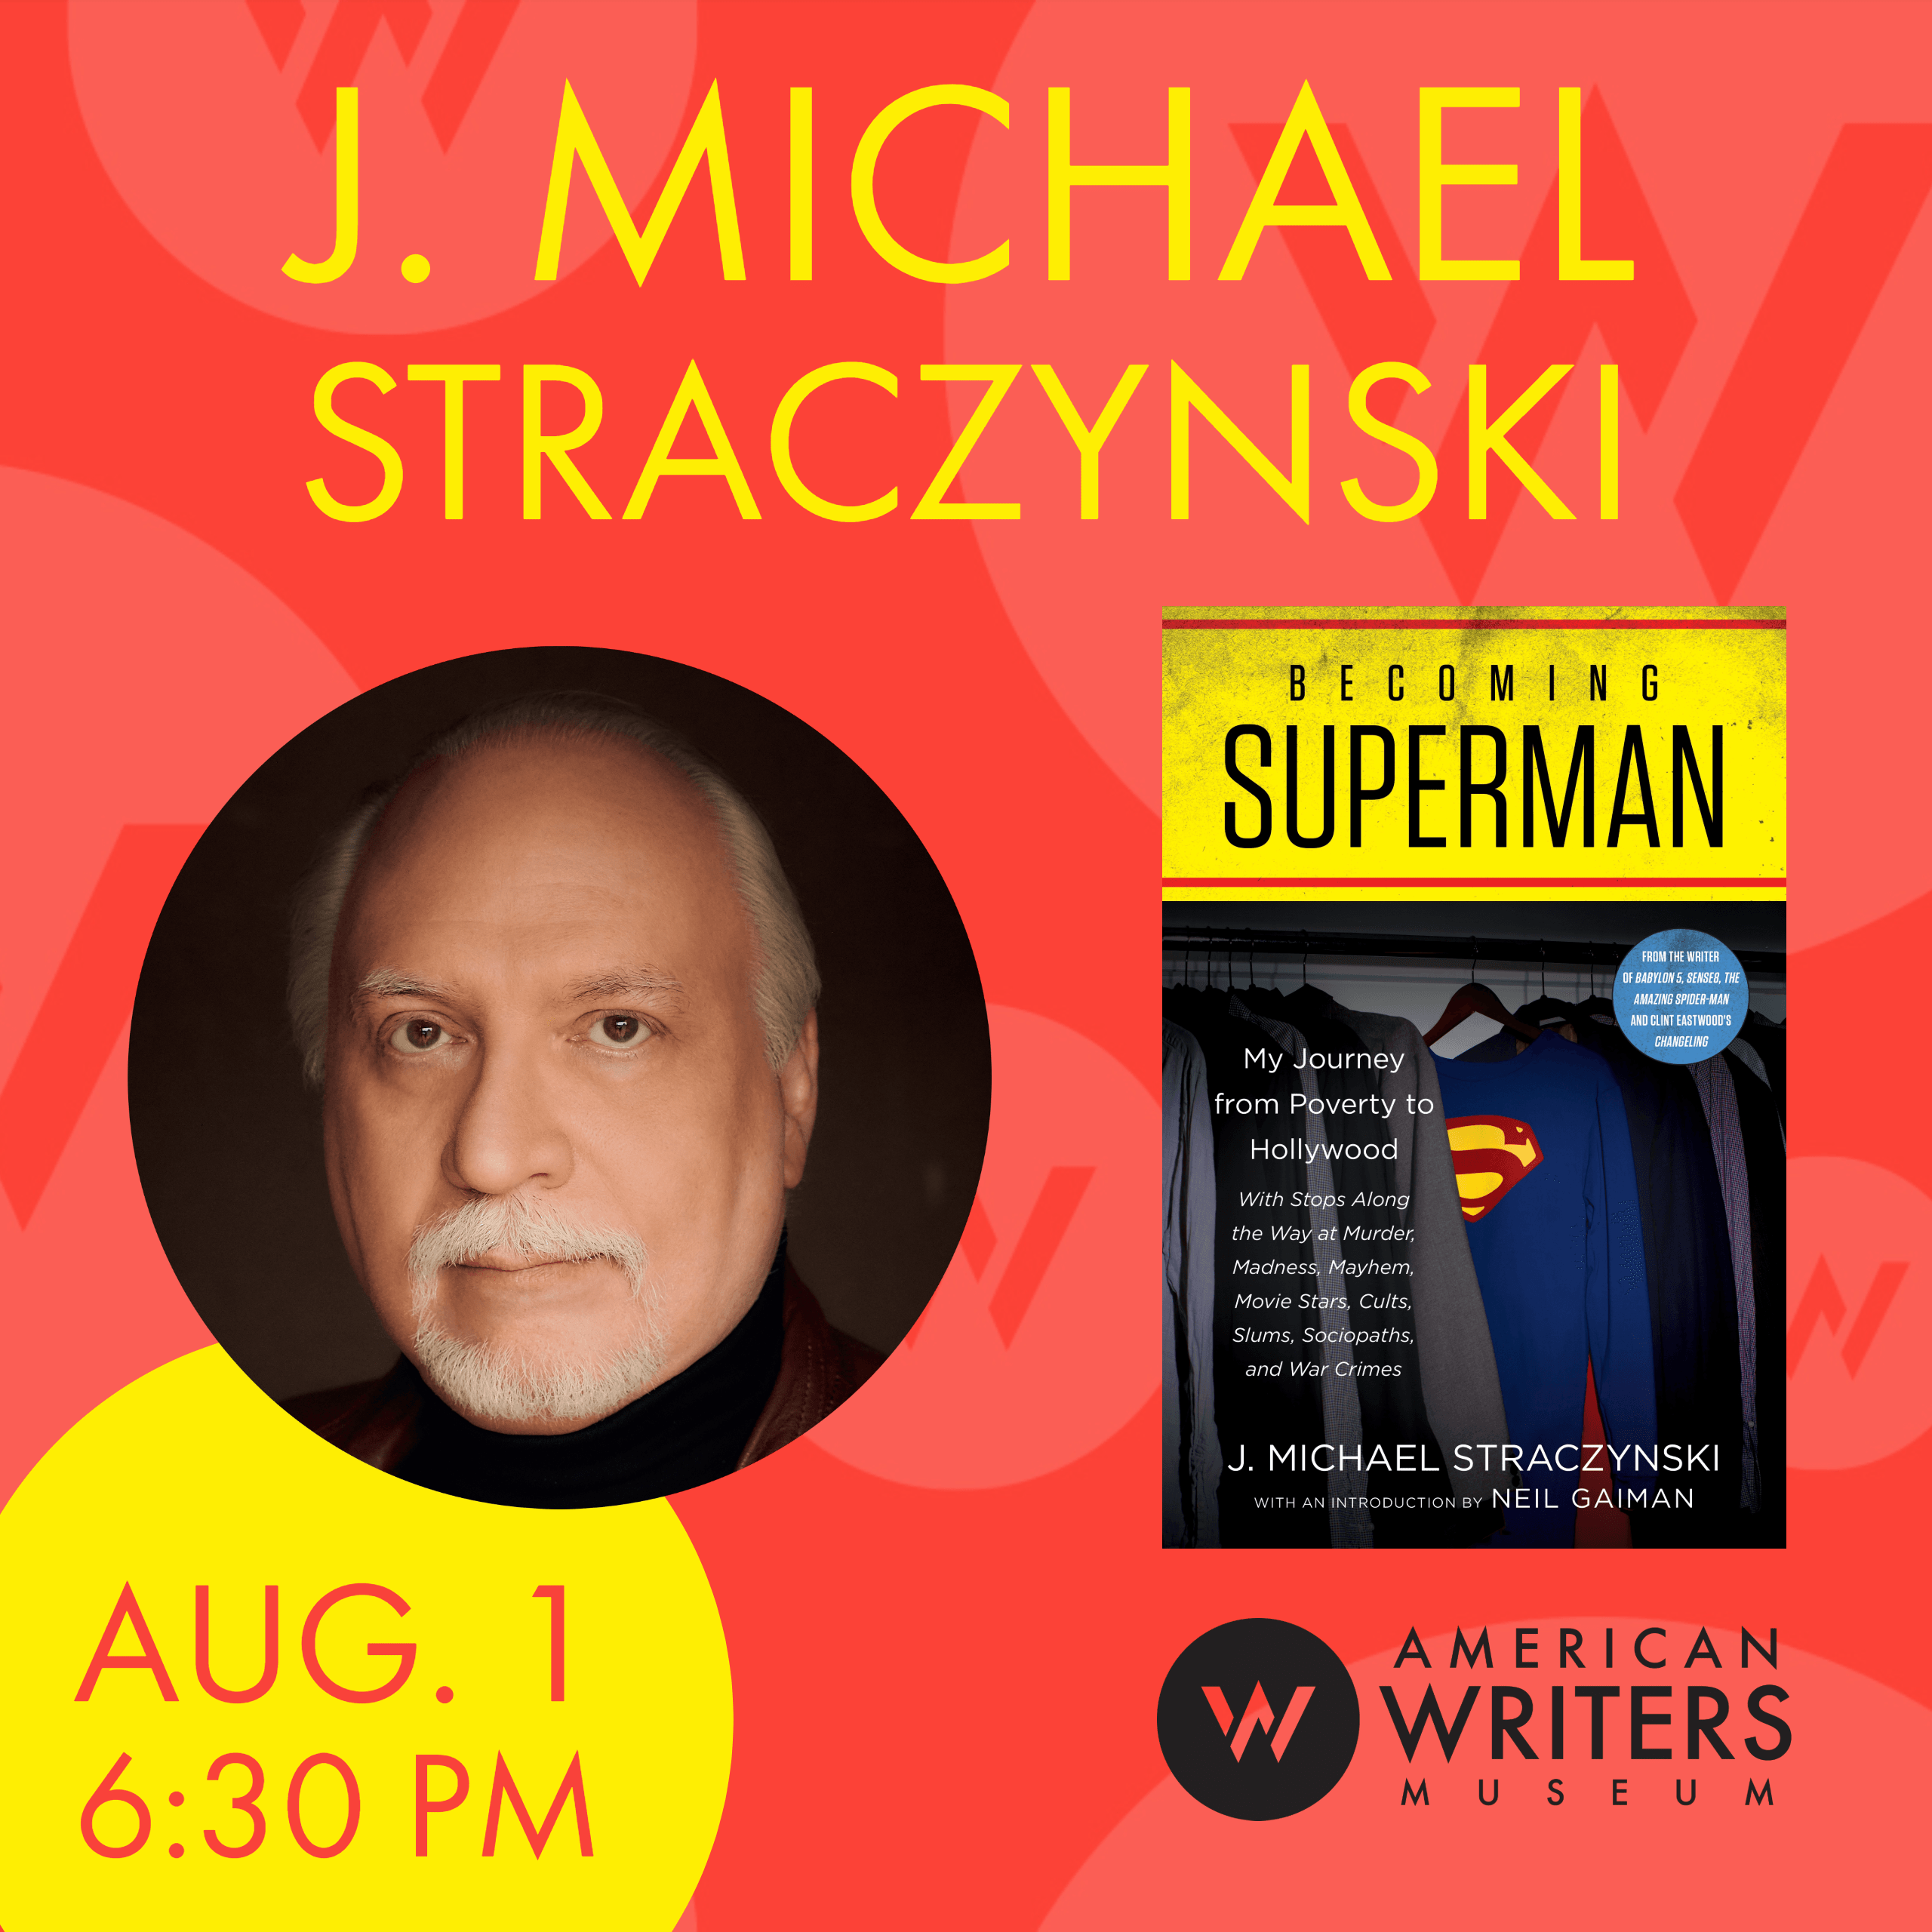 J. Michael Straczynski at the American Writers Museum on August 1